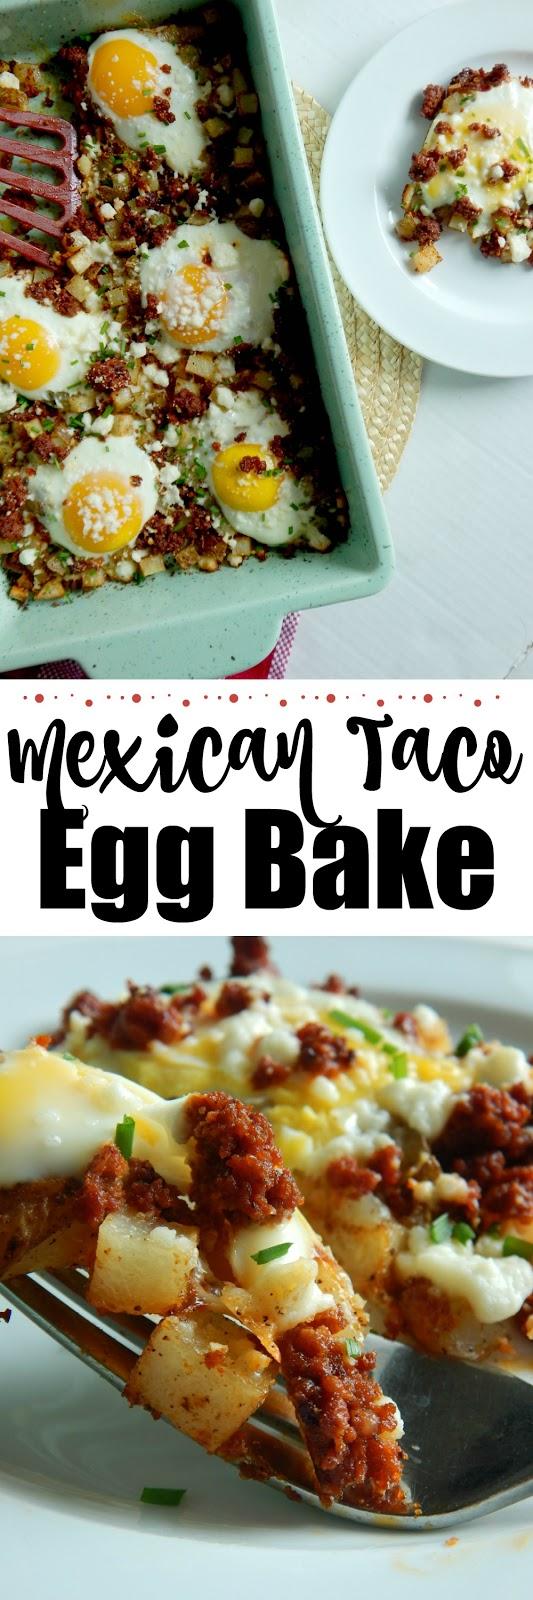 Mexican Taco Egg Bake